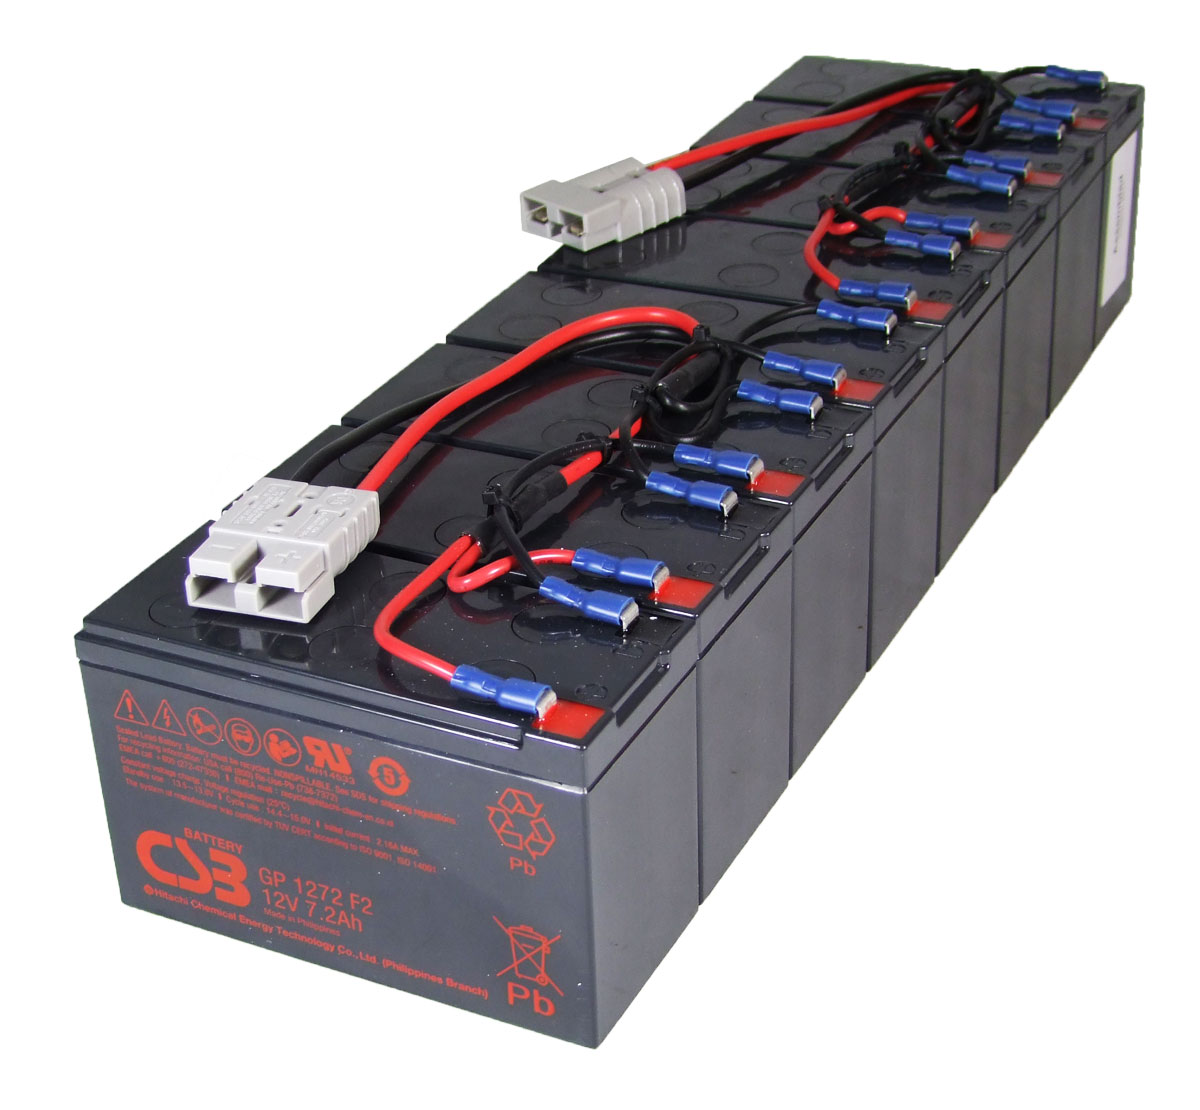 MDS12 UPS Battery Kit - Replaces APC RBC12